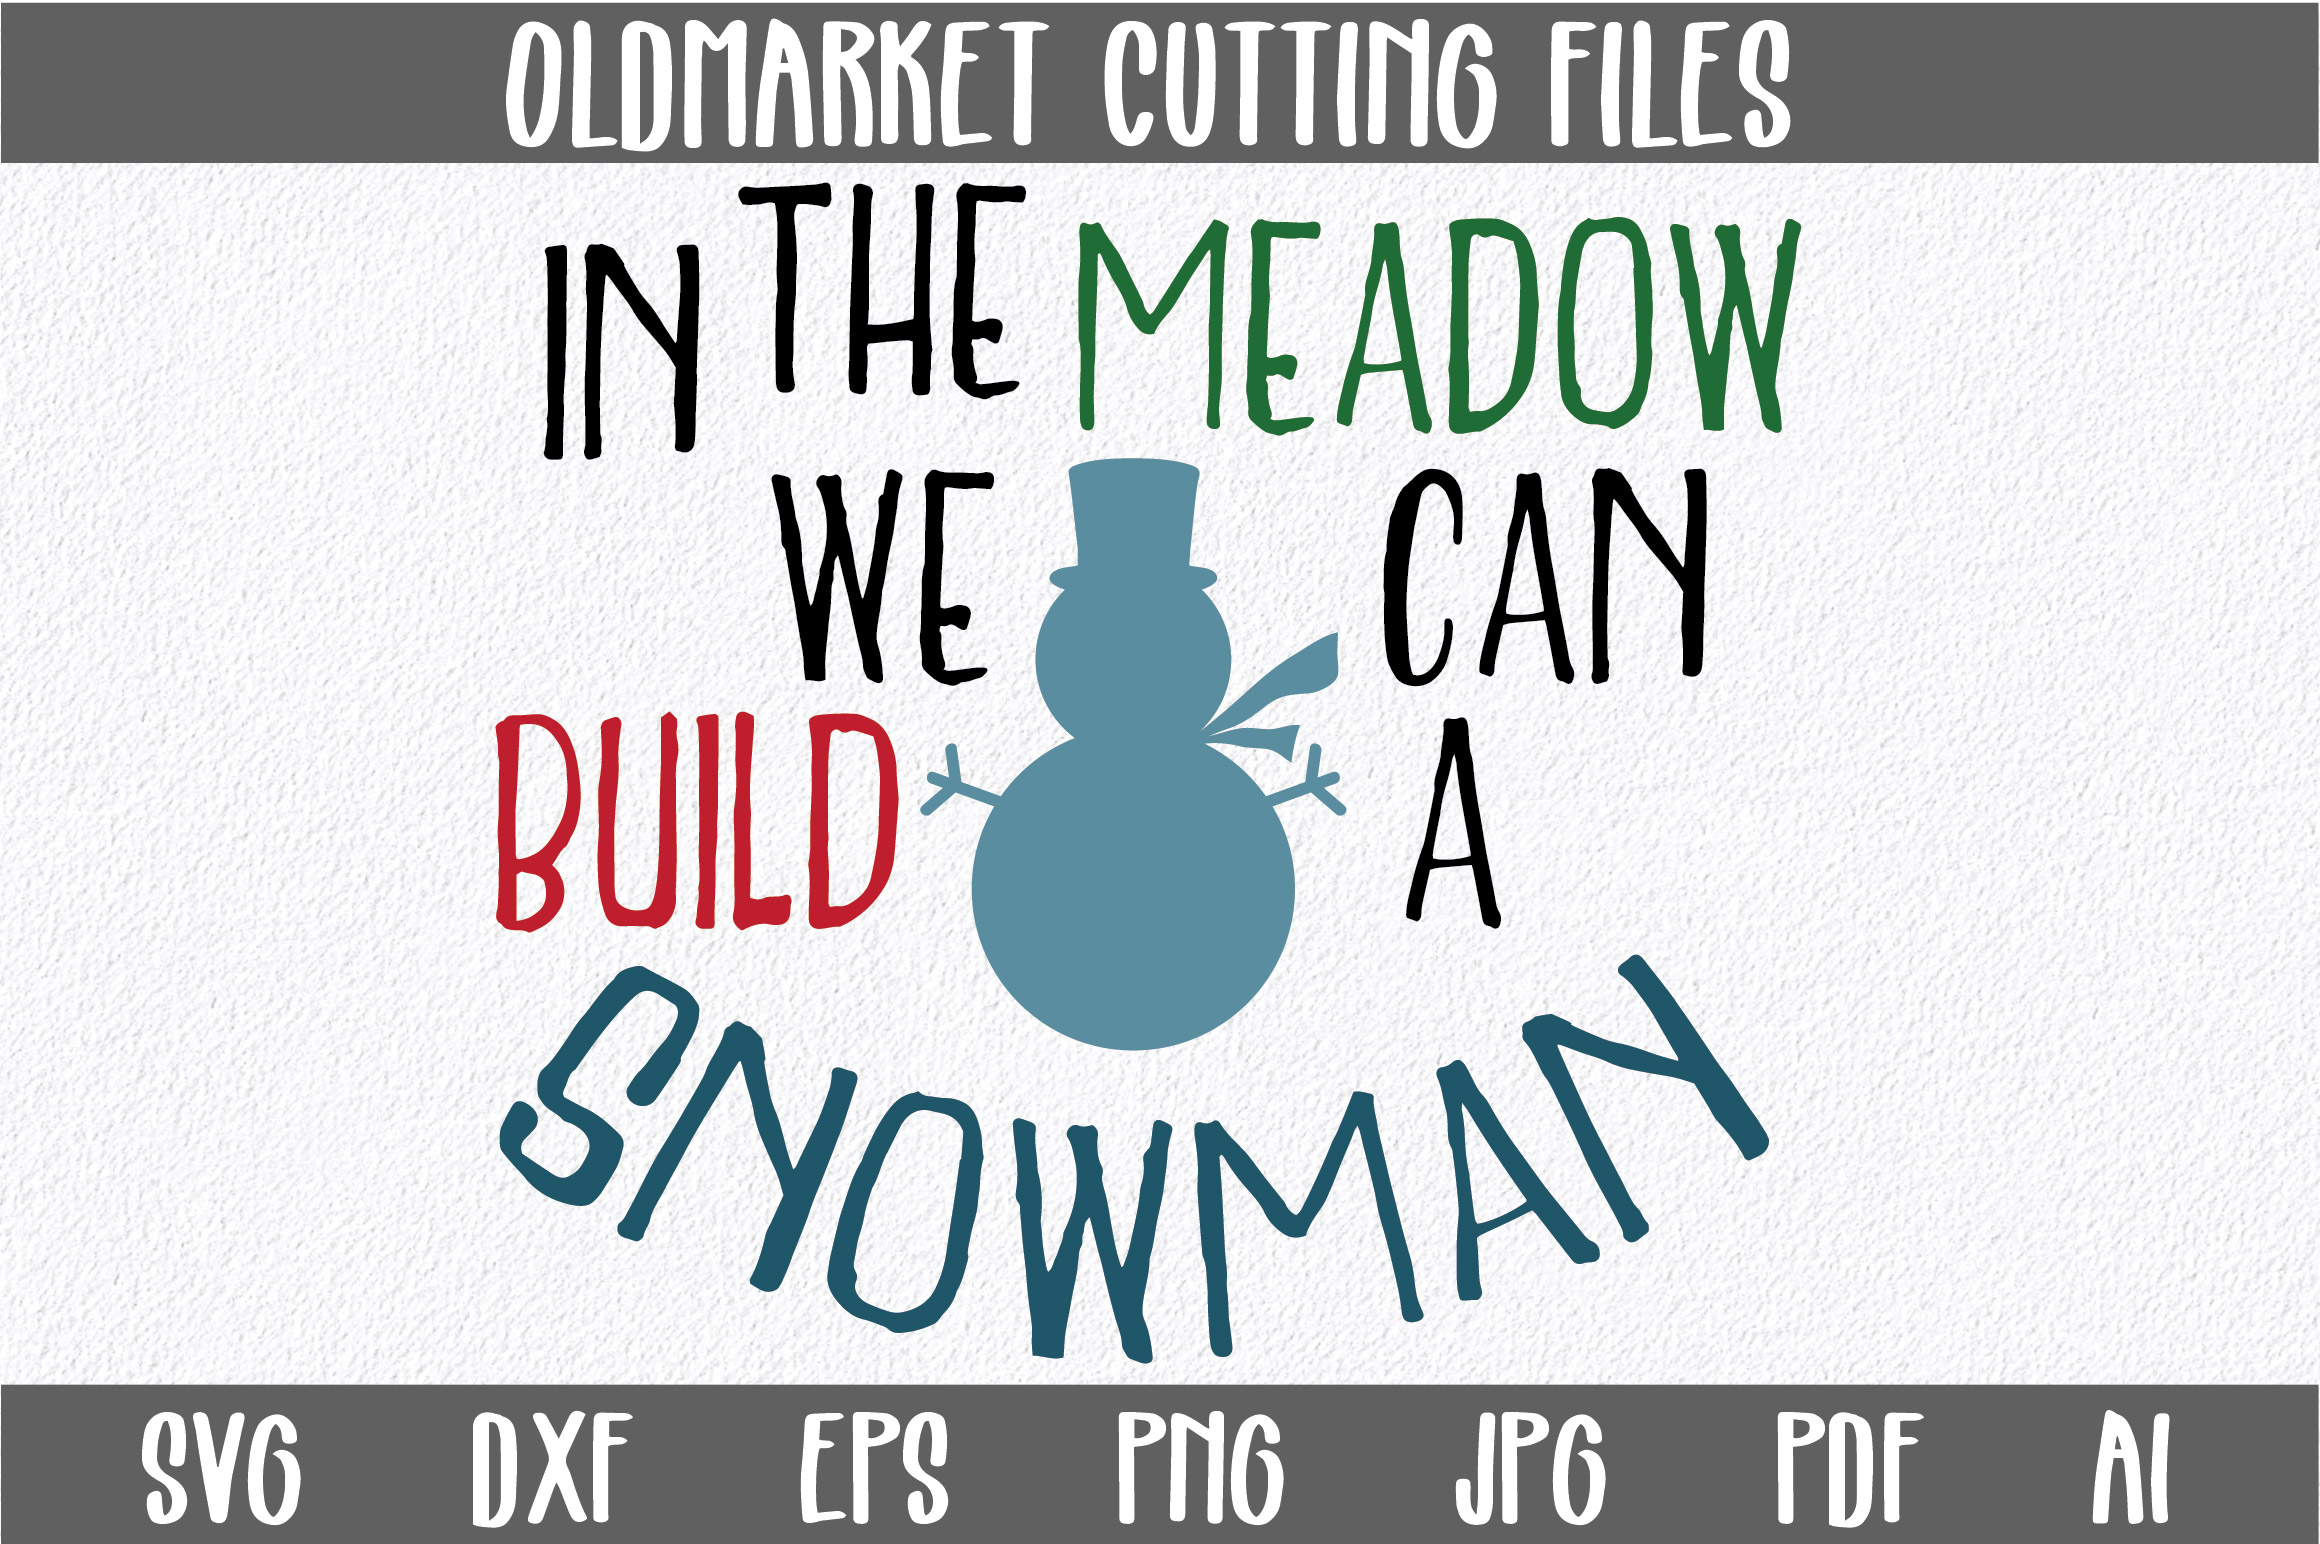 Download Free Build A Snowman Svg Cut File Graphic By Oldmarketdesigns for Cricut Explore, Silhouette and other cutting machines.